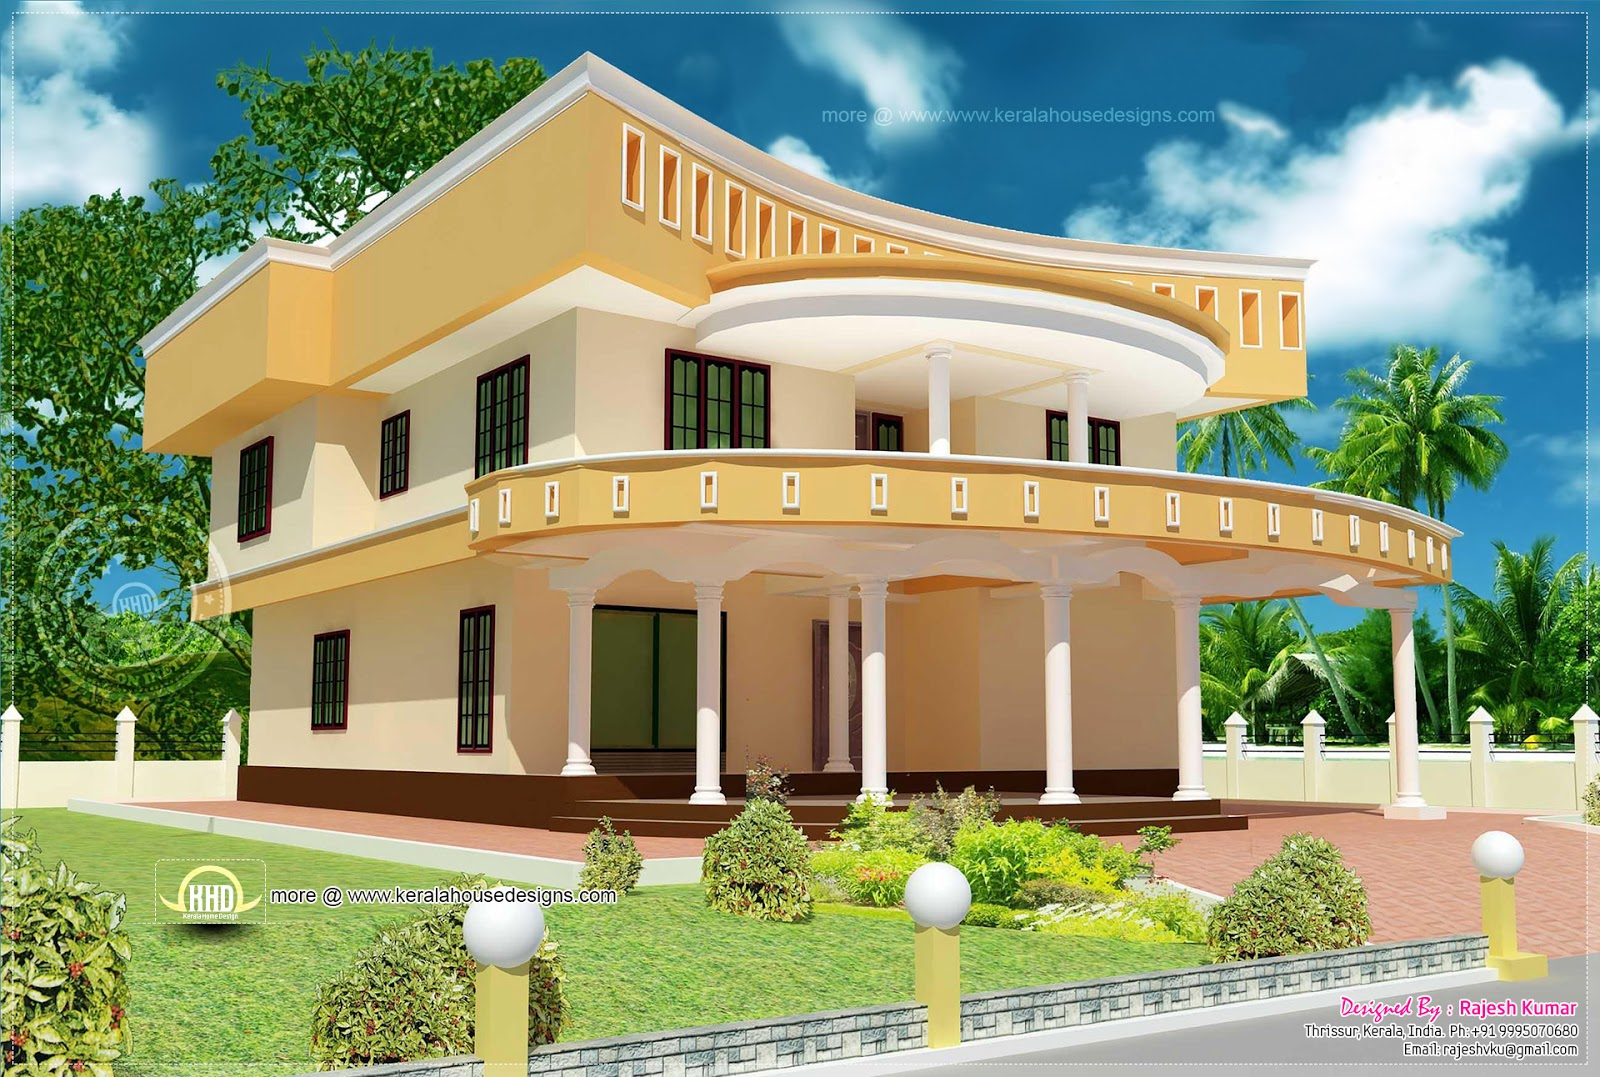 Unique home design in kerala kerala home design and for Unique house designs